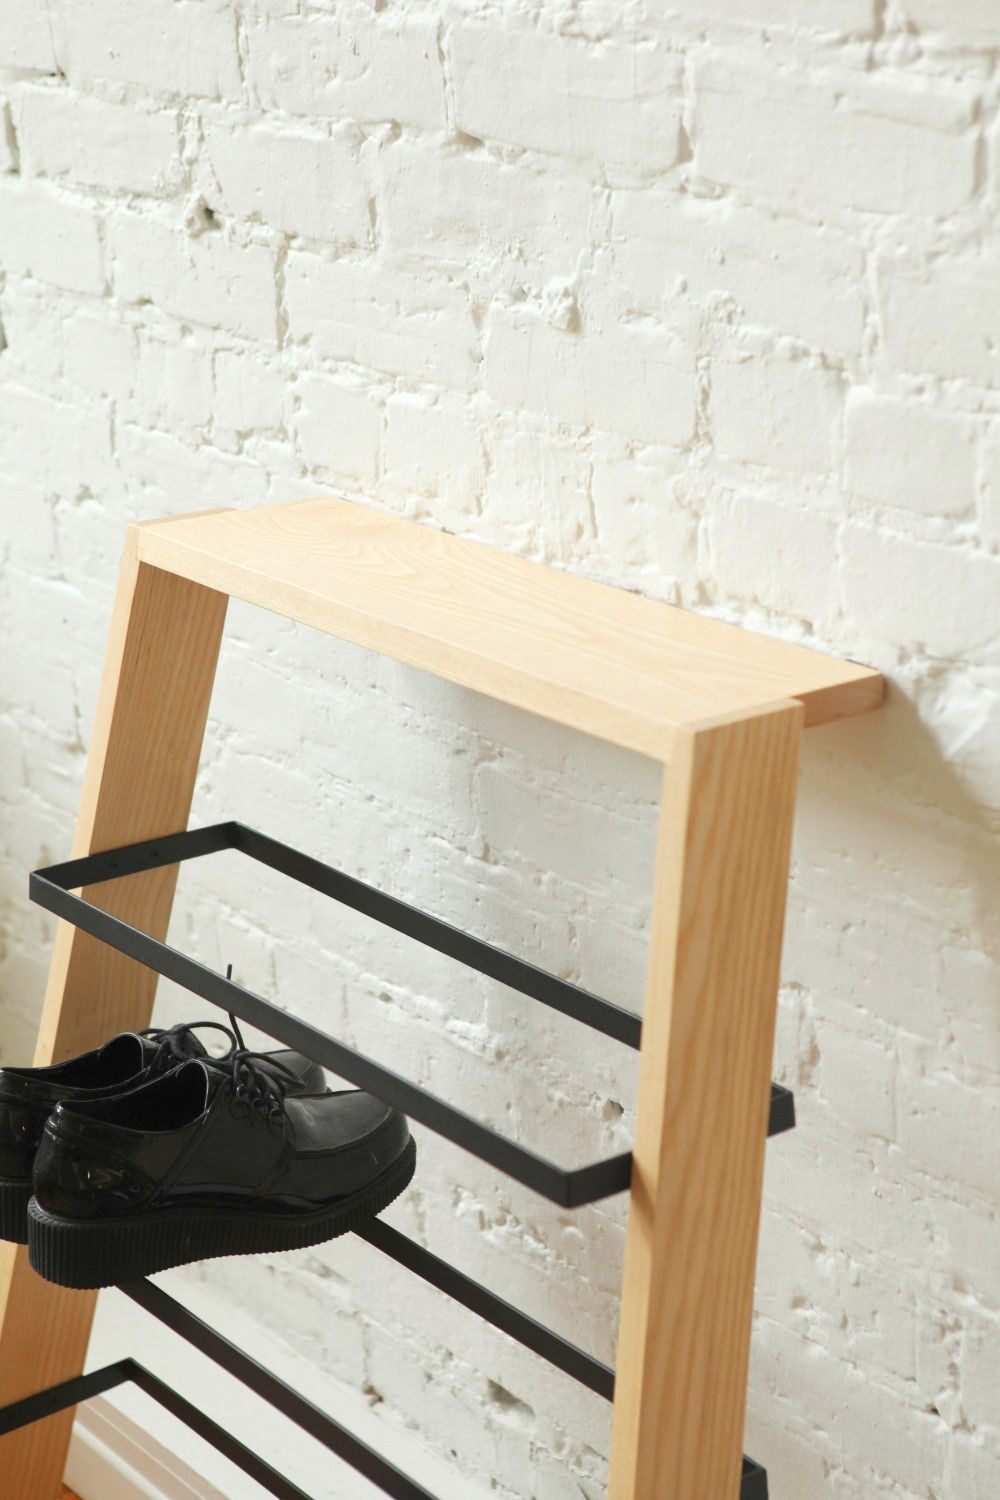 Noli Shoe Rack From Furniture Maison   Modern, Mid Century And Scandinavian